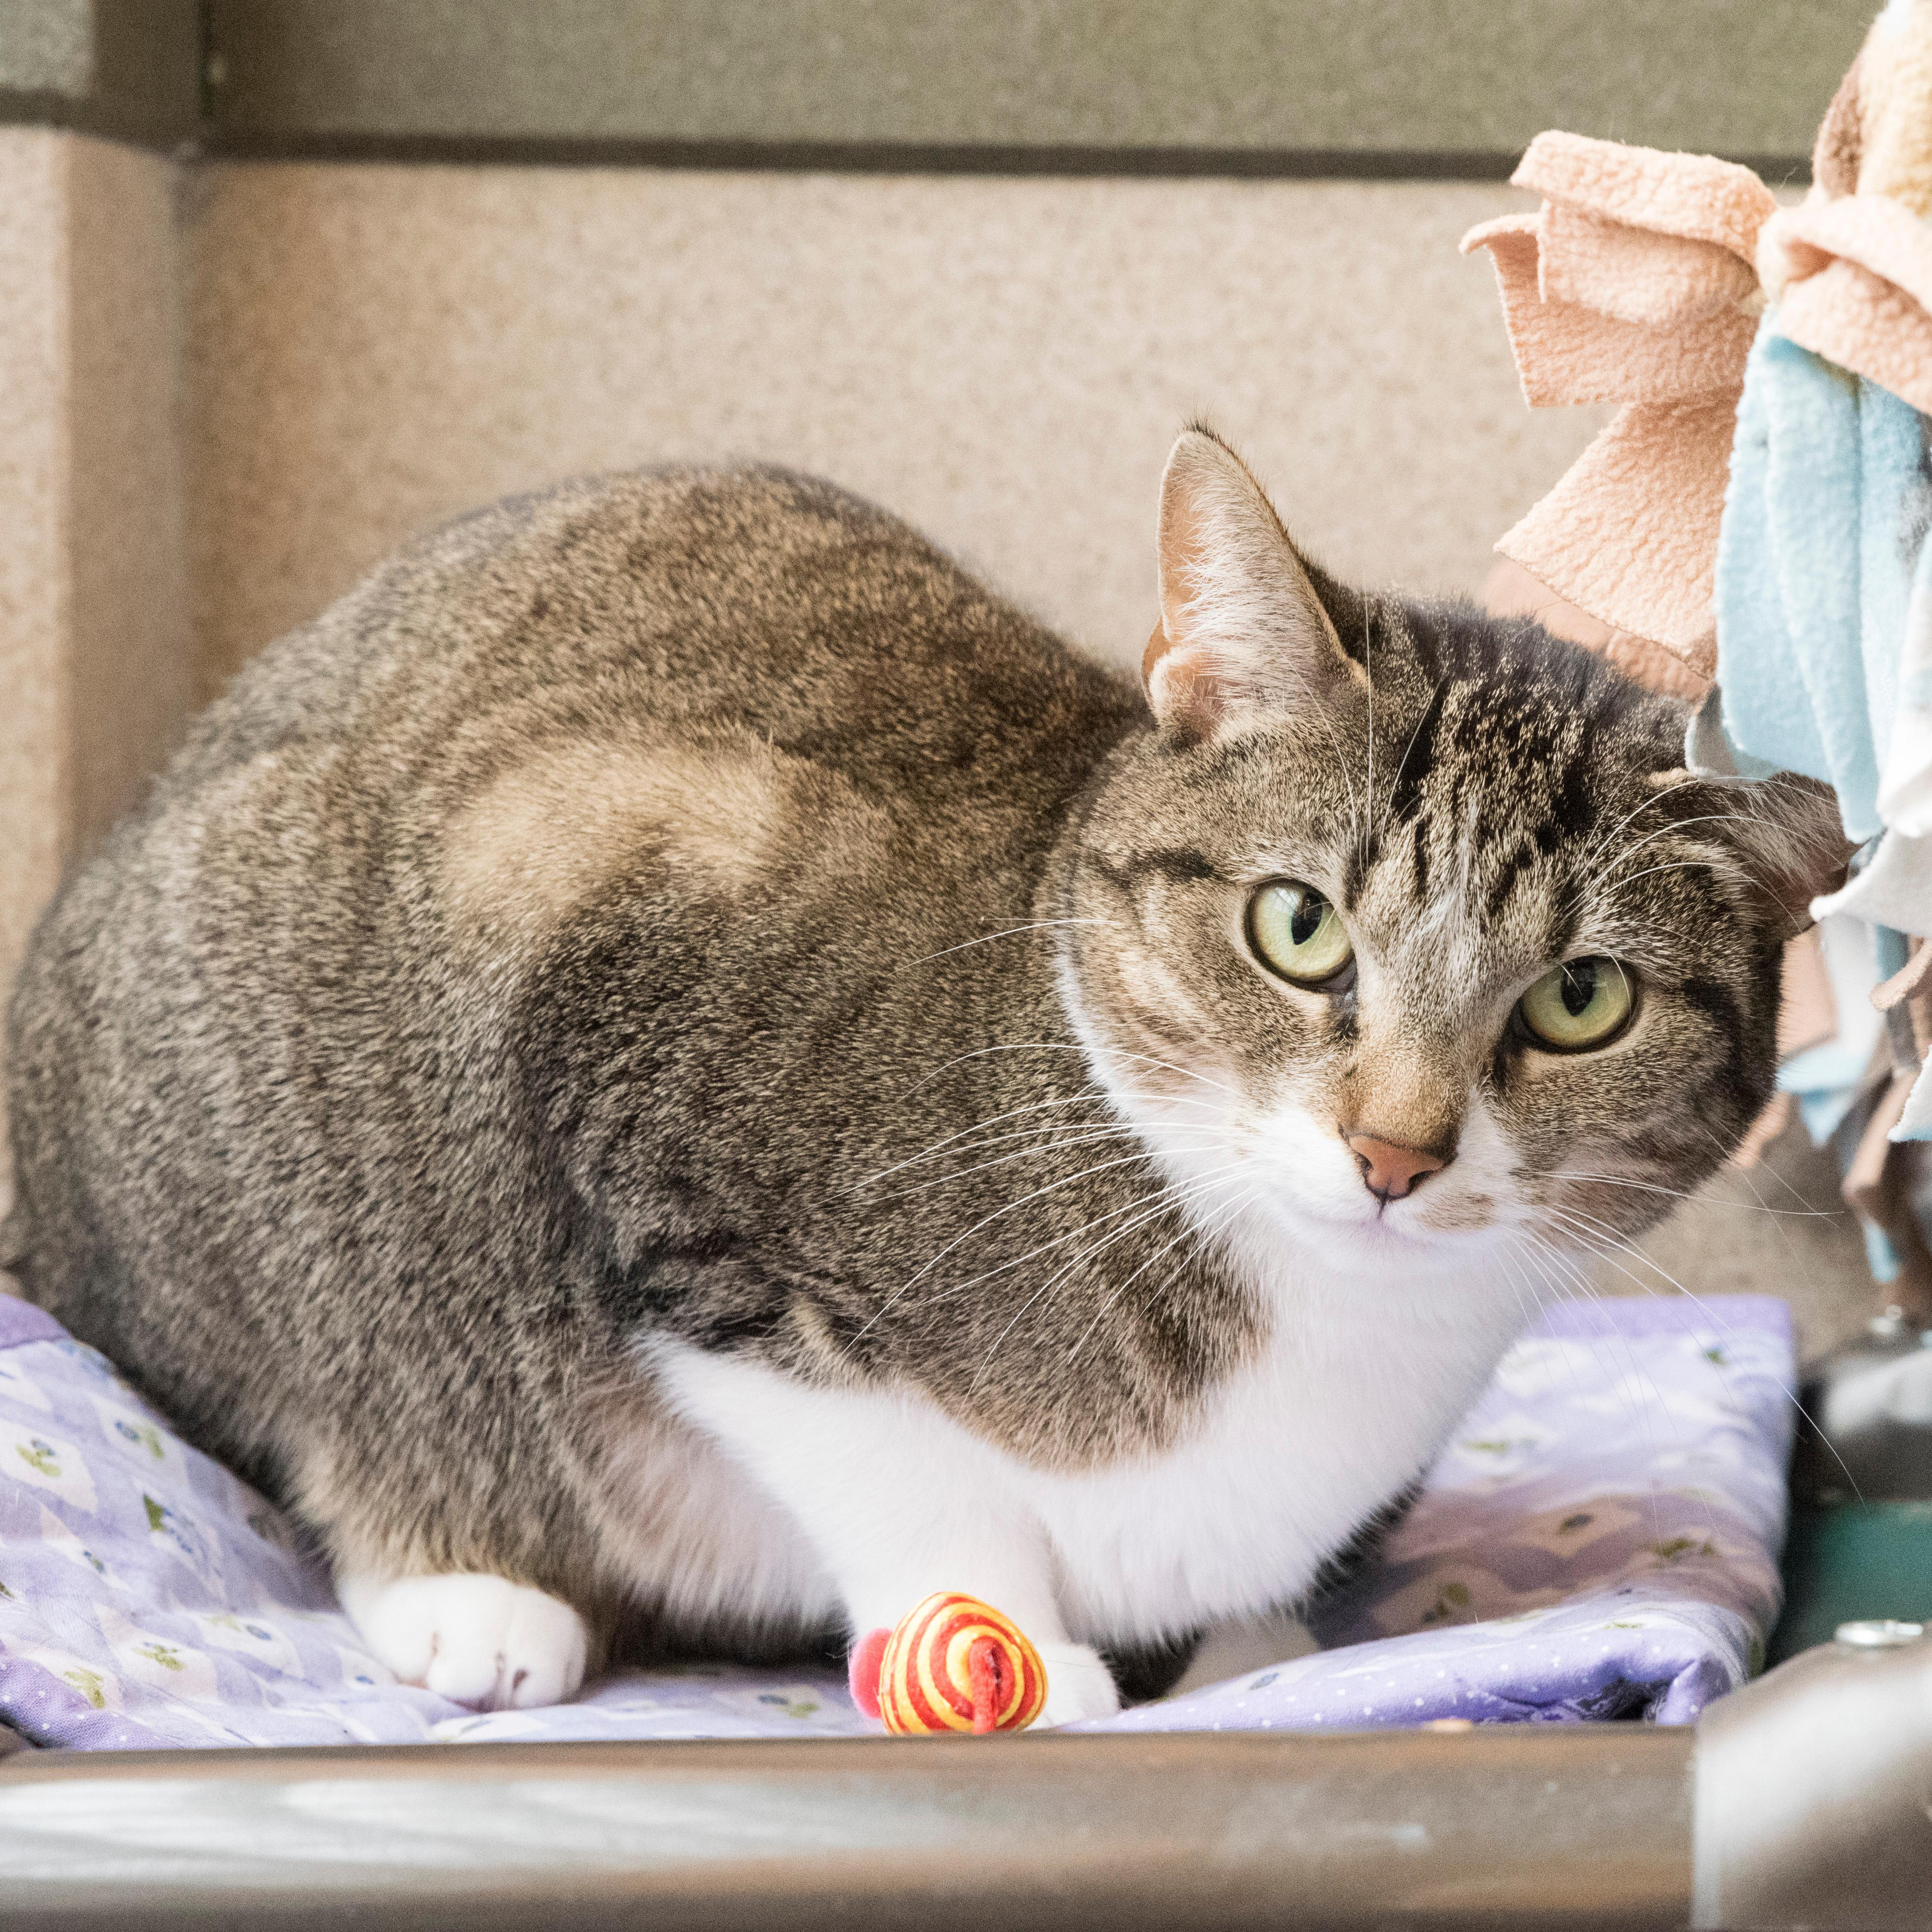 Missy is an independent lady, who likes to be the boss, but if you're patient and let her come to you, she'll reward you with love and affection. (Image: Courtesy HRA)